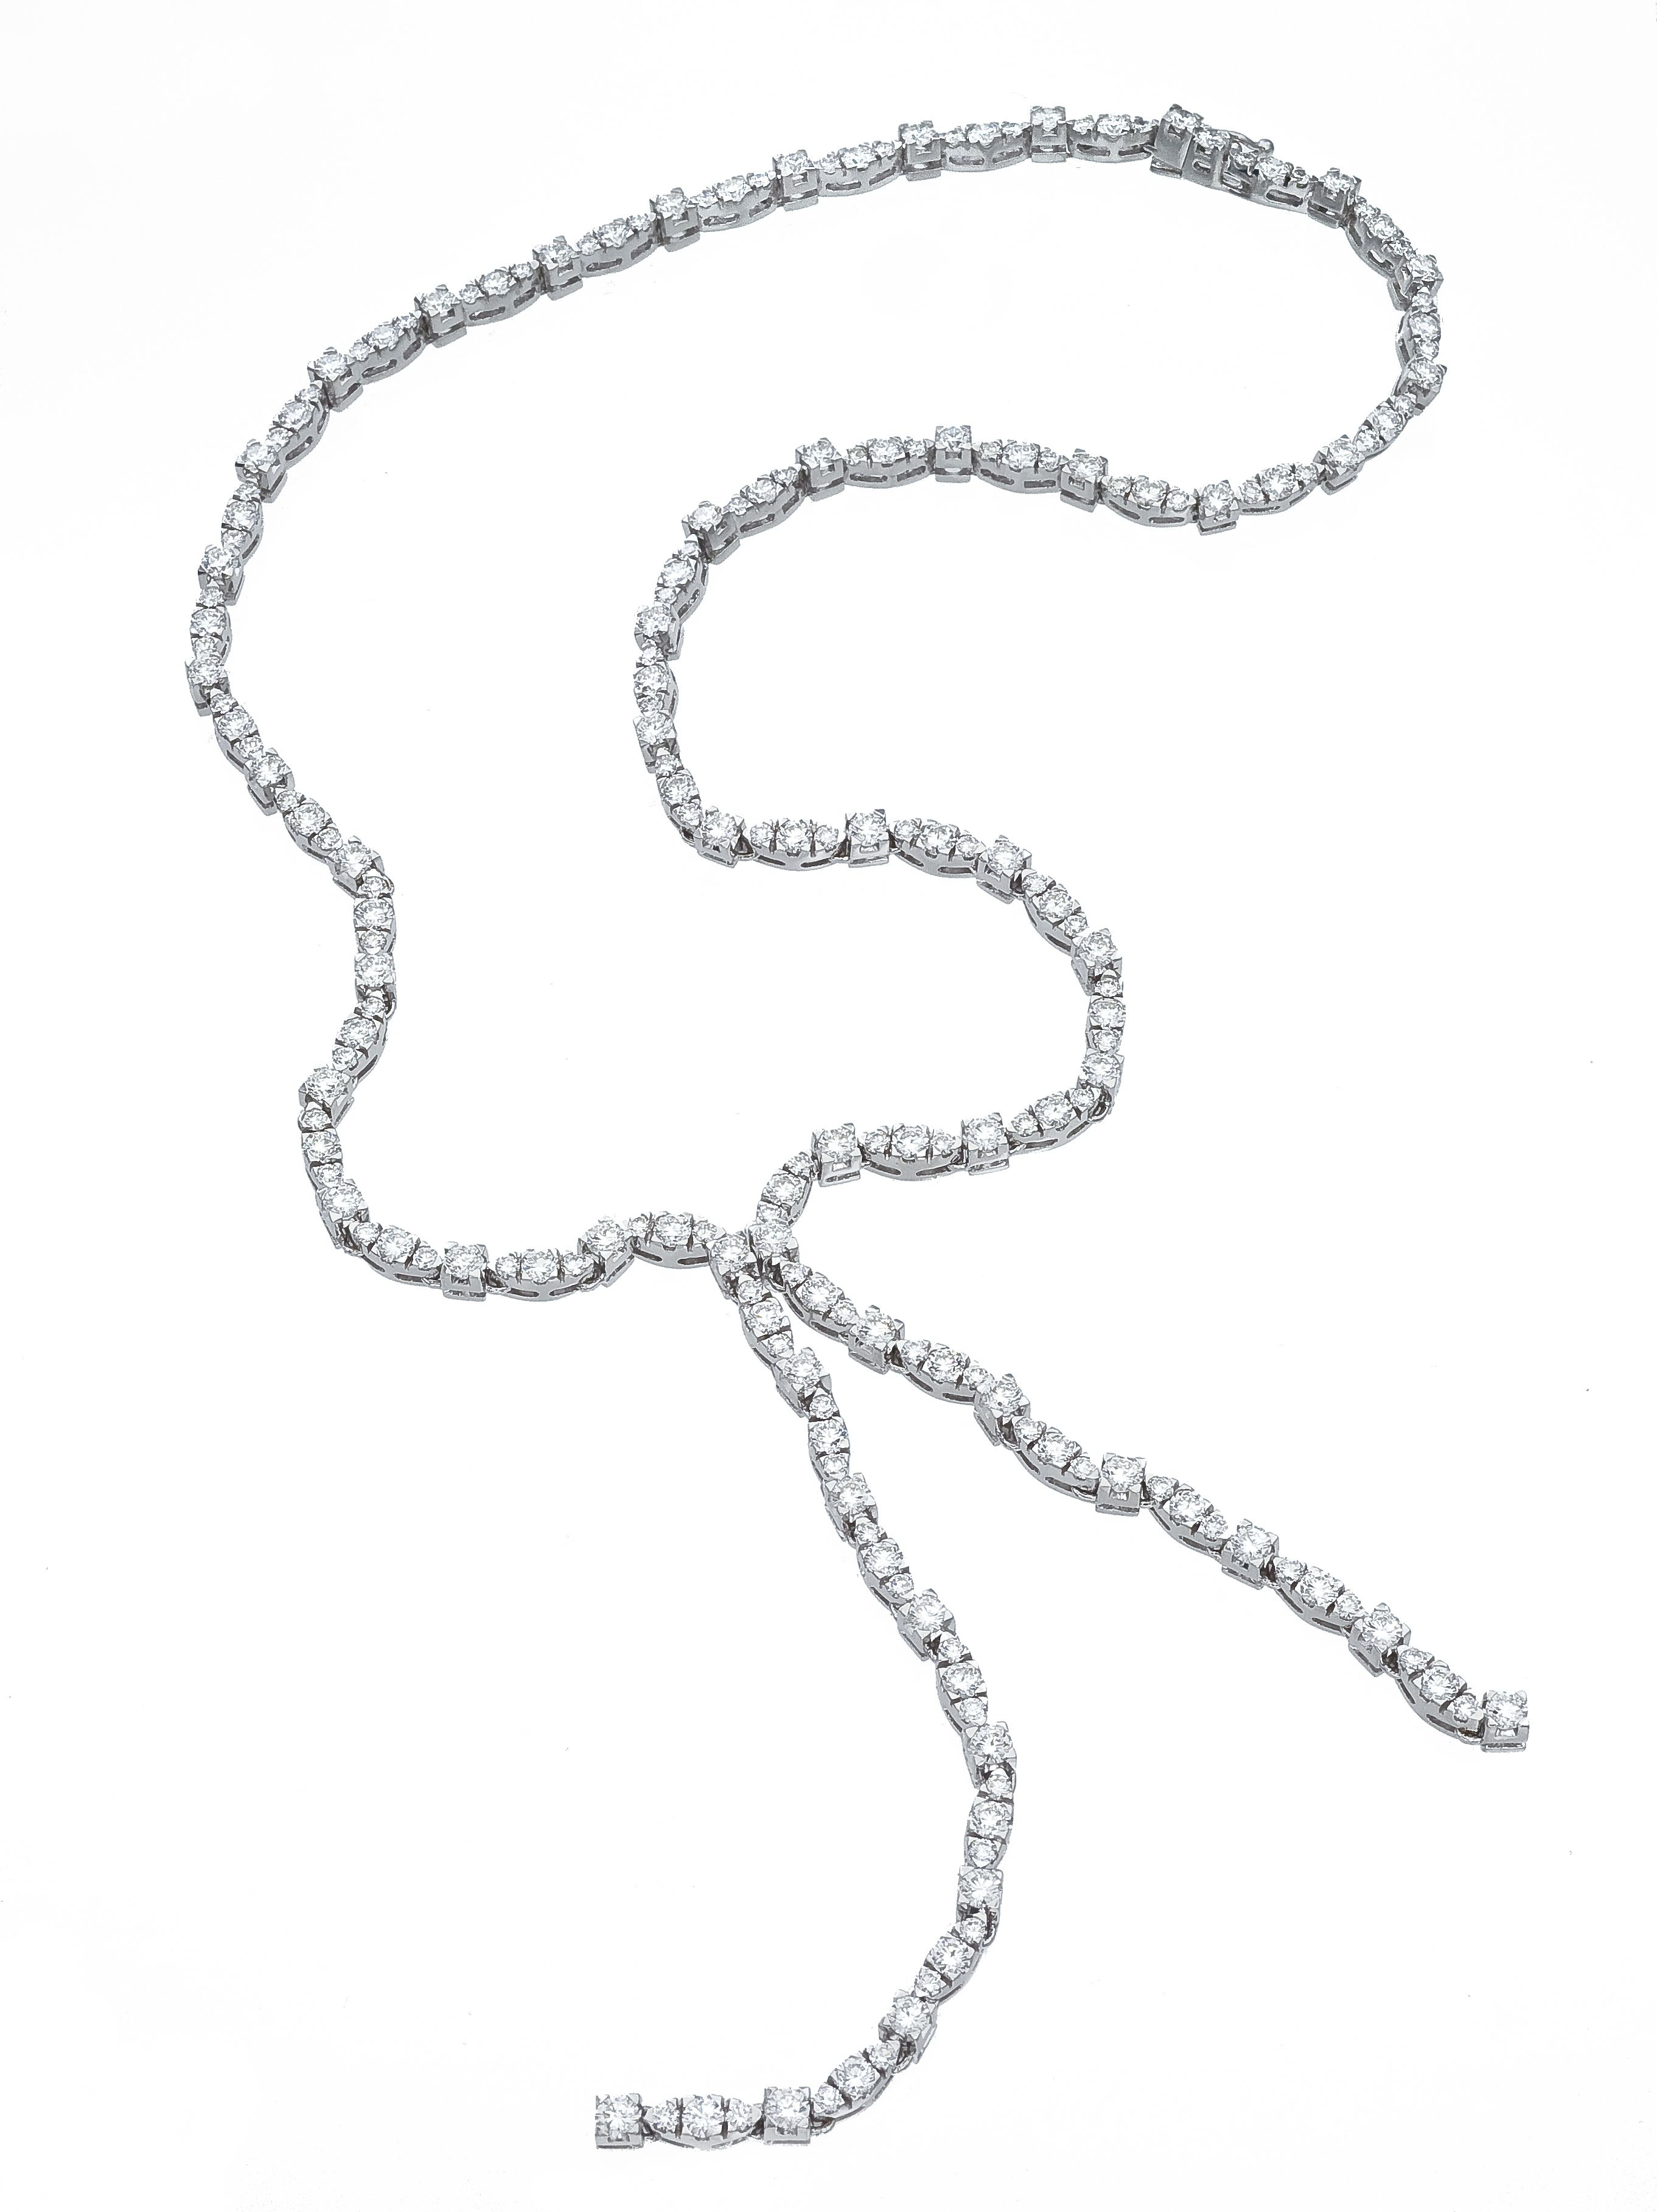 An 18K White Gold Diamond Lariat Necklace Containing (View 11 of 25)